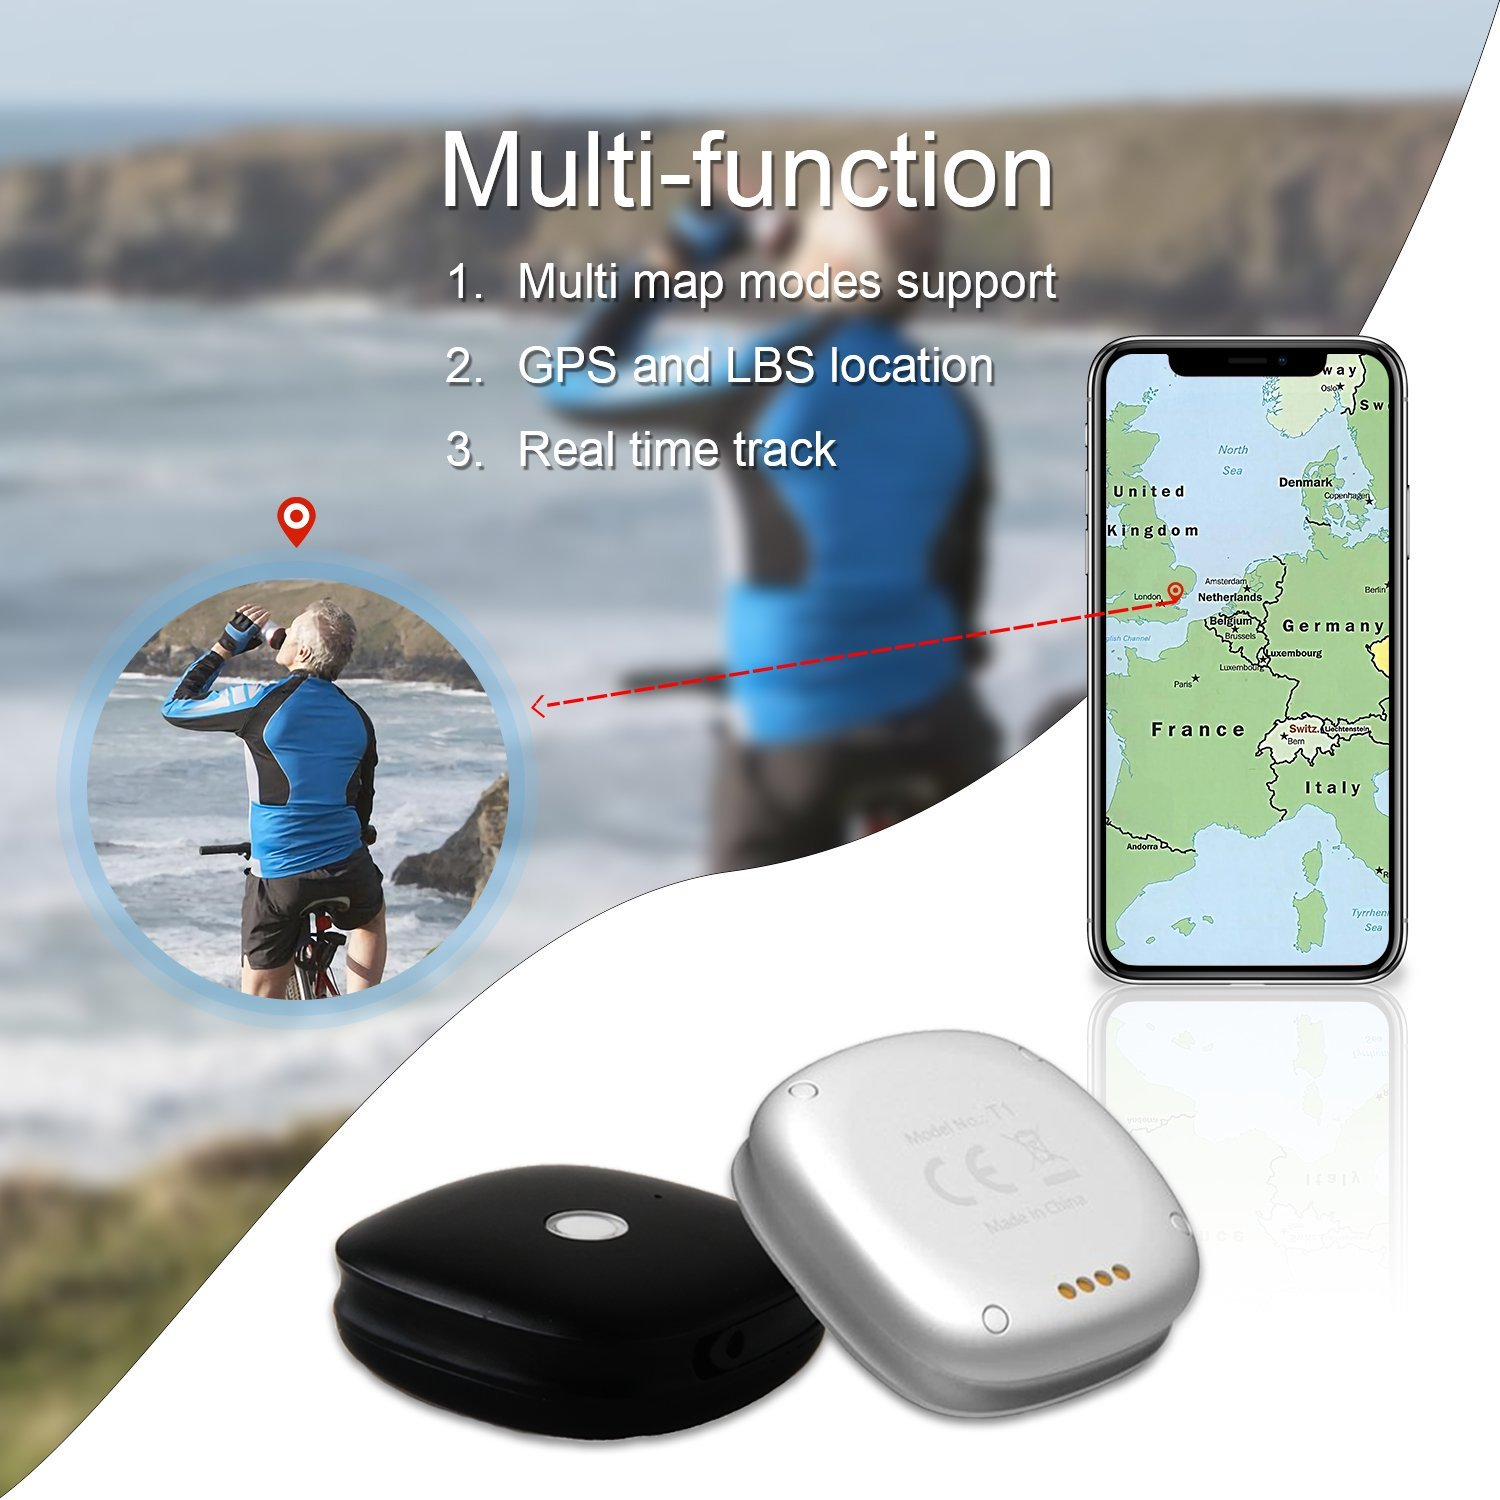 GPS Tracker EnergyPad Tracker Luggage GPS Locator GSM 2G Network Real-time Tracking Monitoring Outdoor Handheld GPS Unit Mini Finder for the Elderly Kids Pet Car Motorcycle by App Control